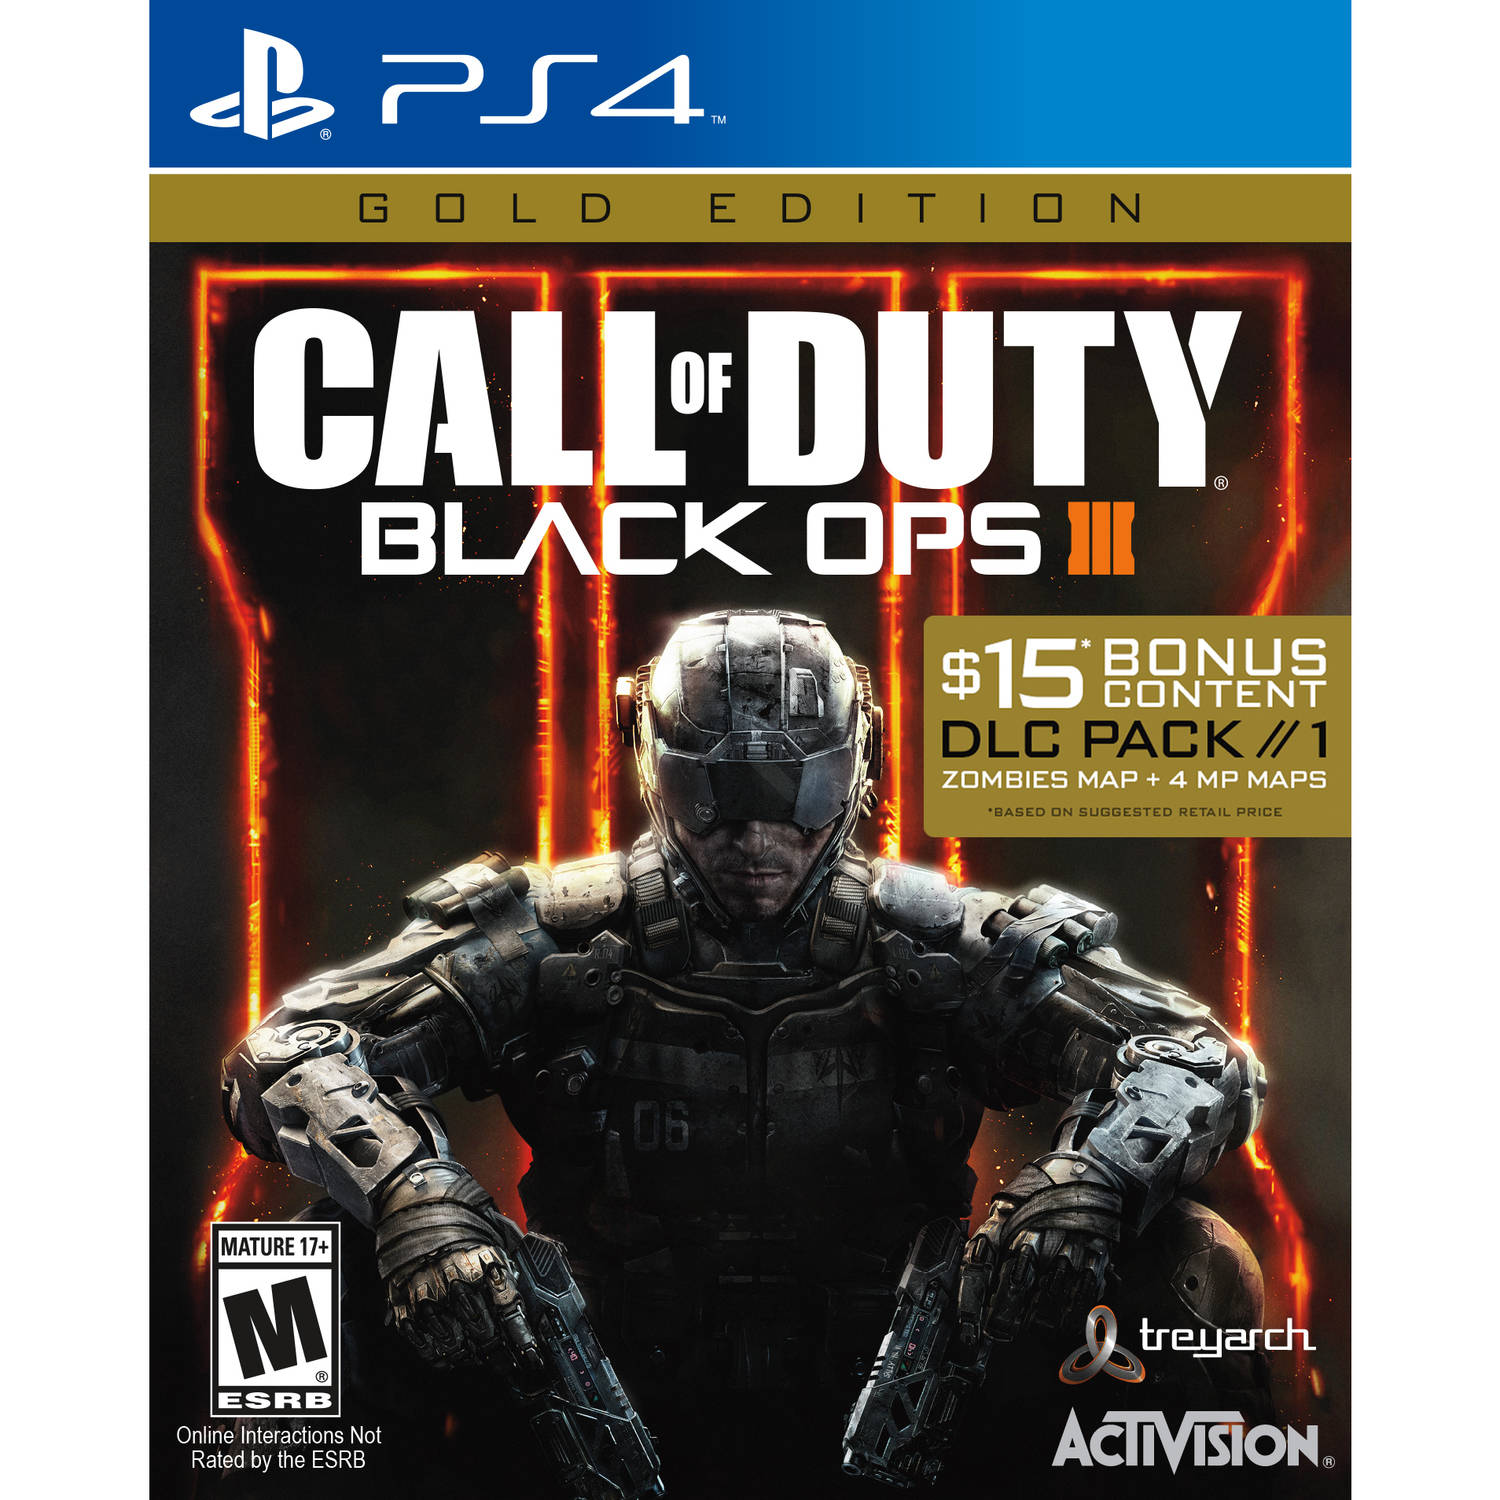 Call of Duty Black Ops 3 Gold Edition w  DLC (Playstation 4) by Activision Blizzard Inc